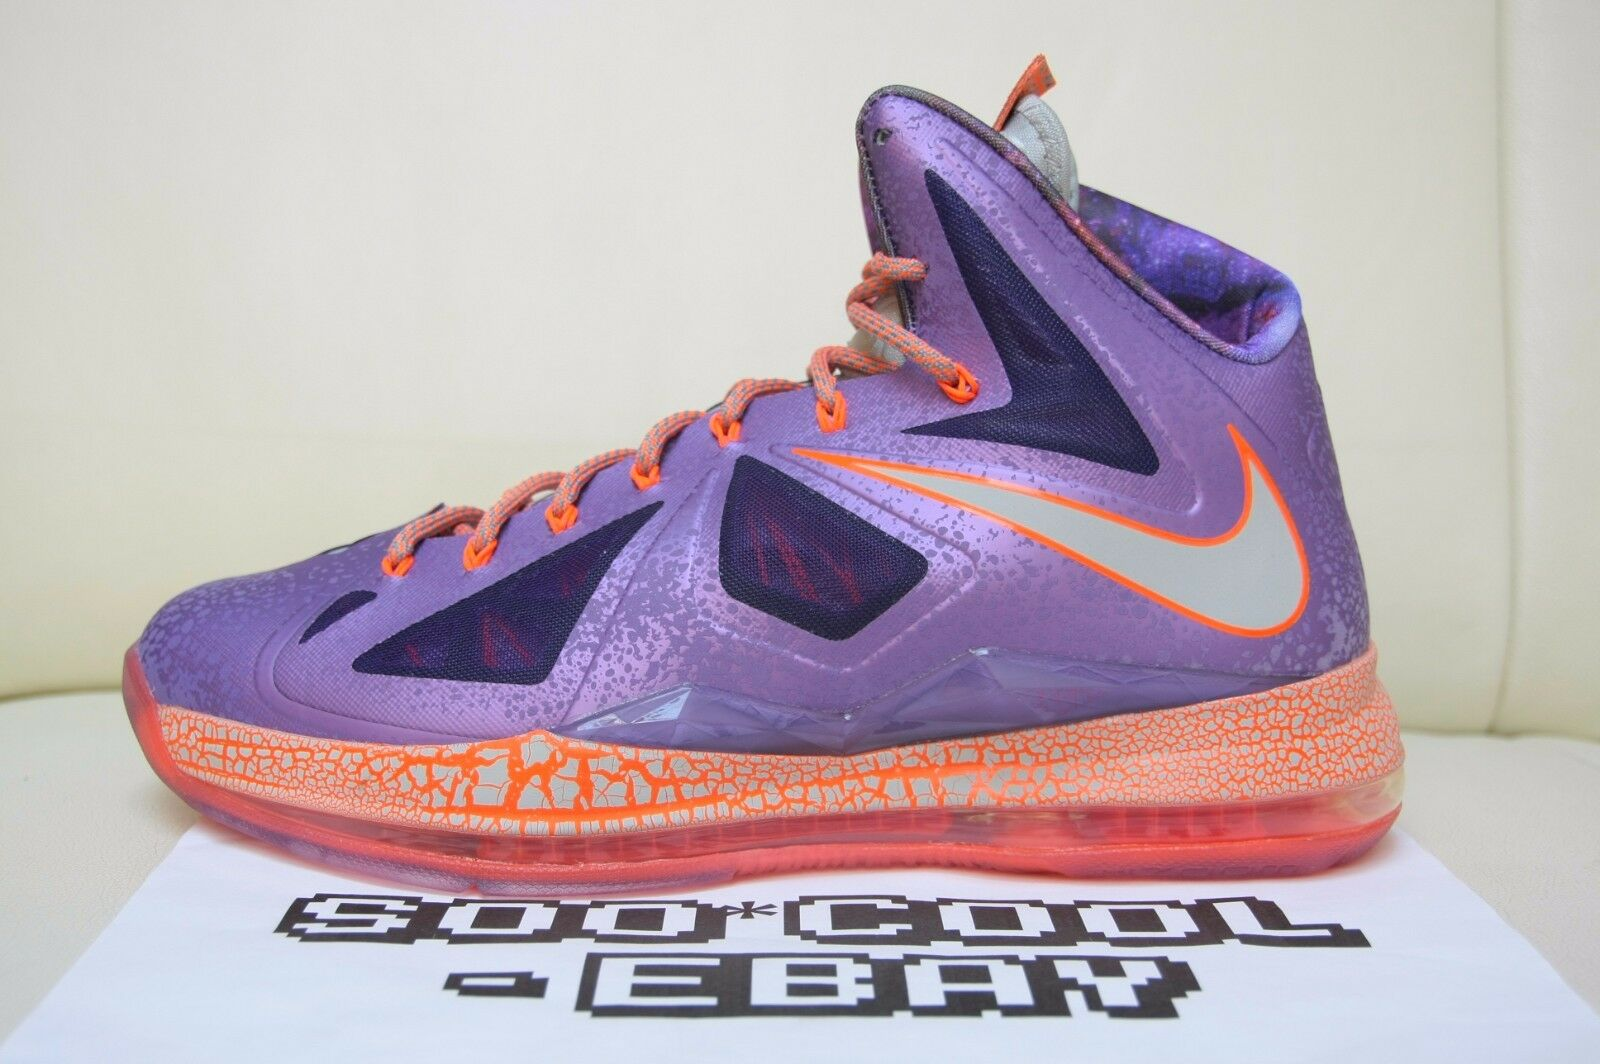 lebron 10 x am game all - star - game am ✳️ uns 11,5 nike bereich 72 100% deadstock ds ✳️ b5663f